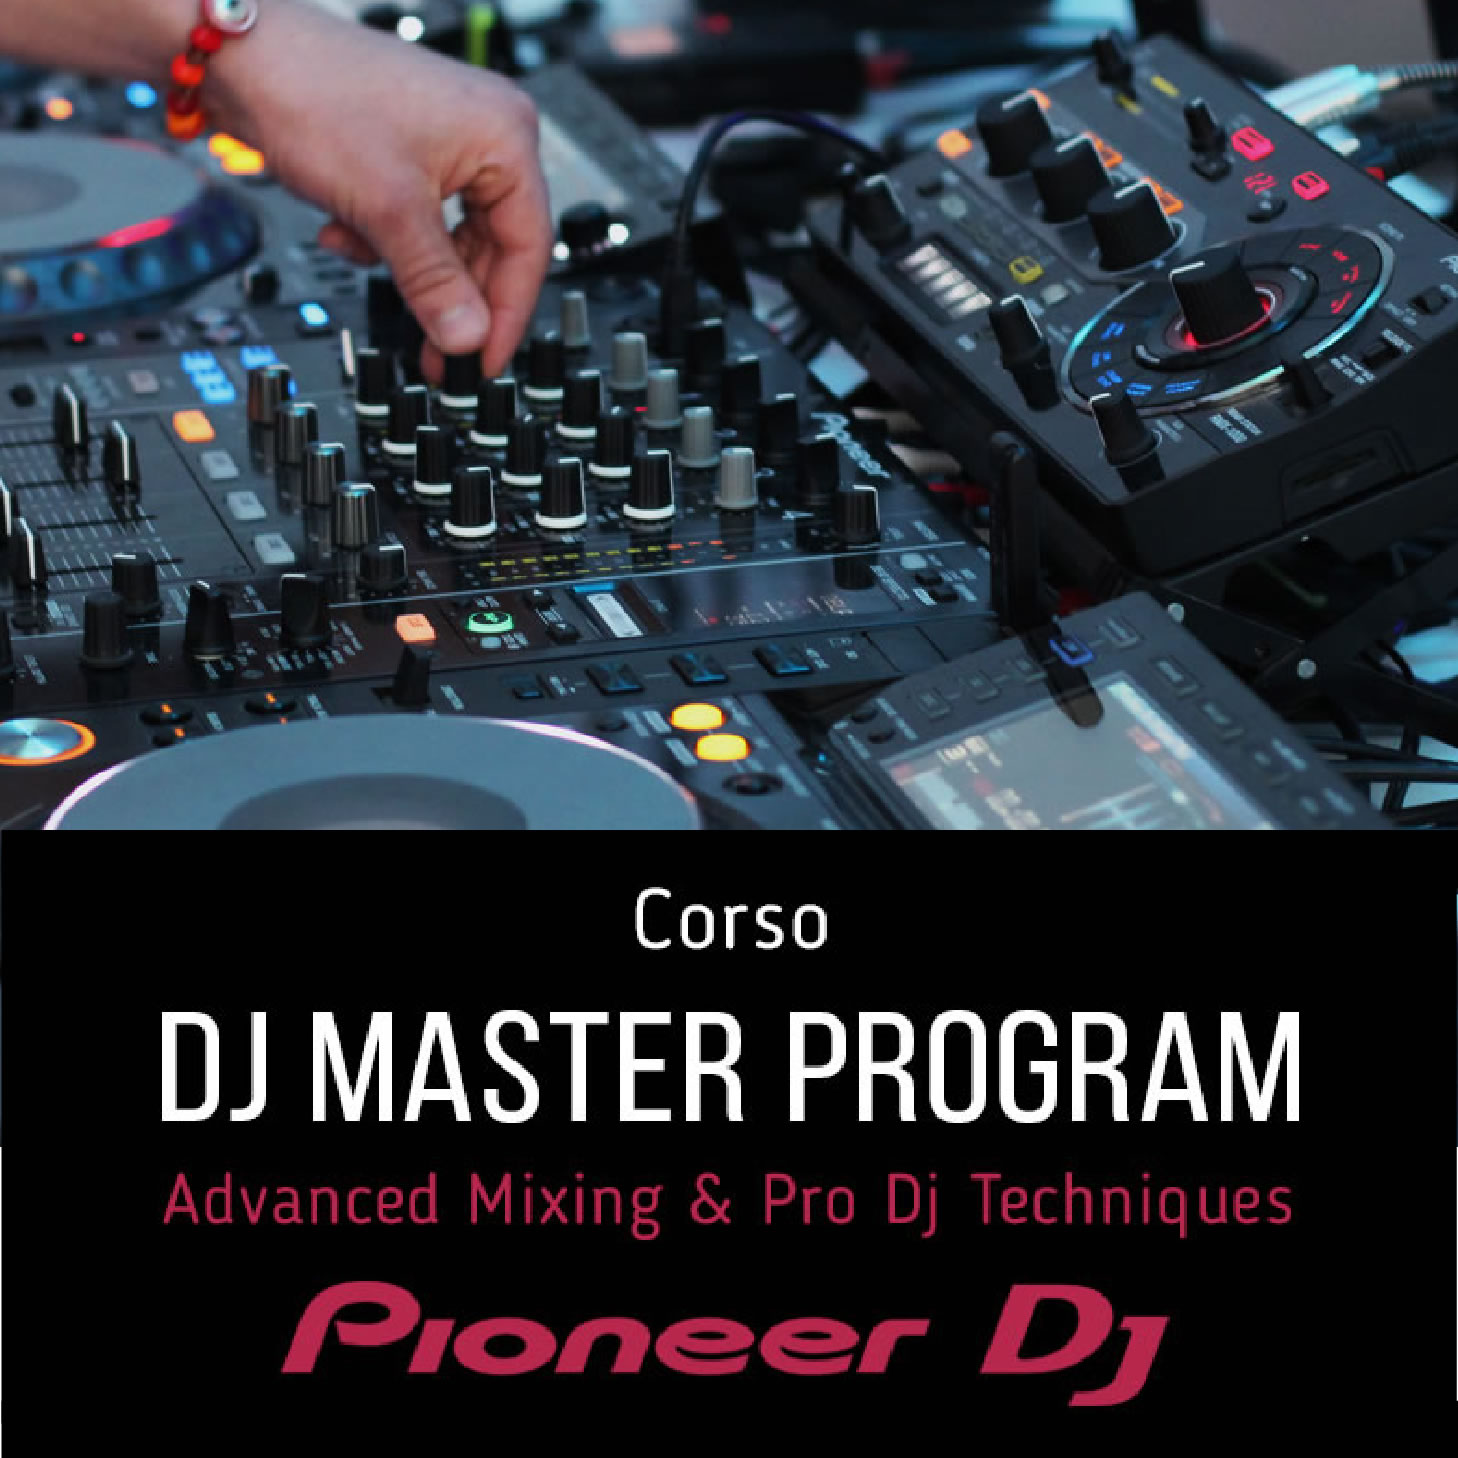 corso_dj_master_program_banner_adv_opt